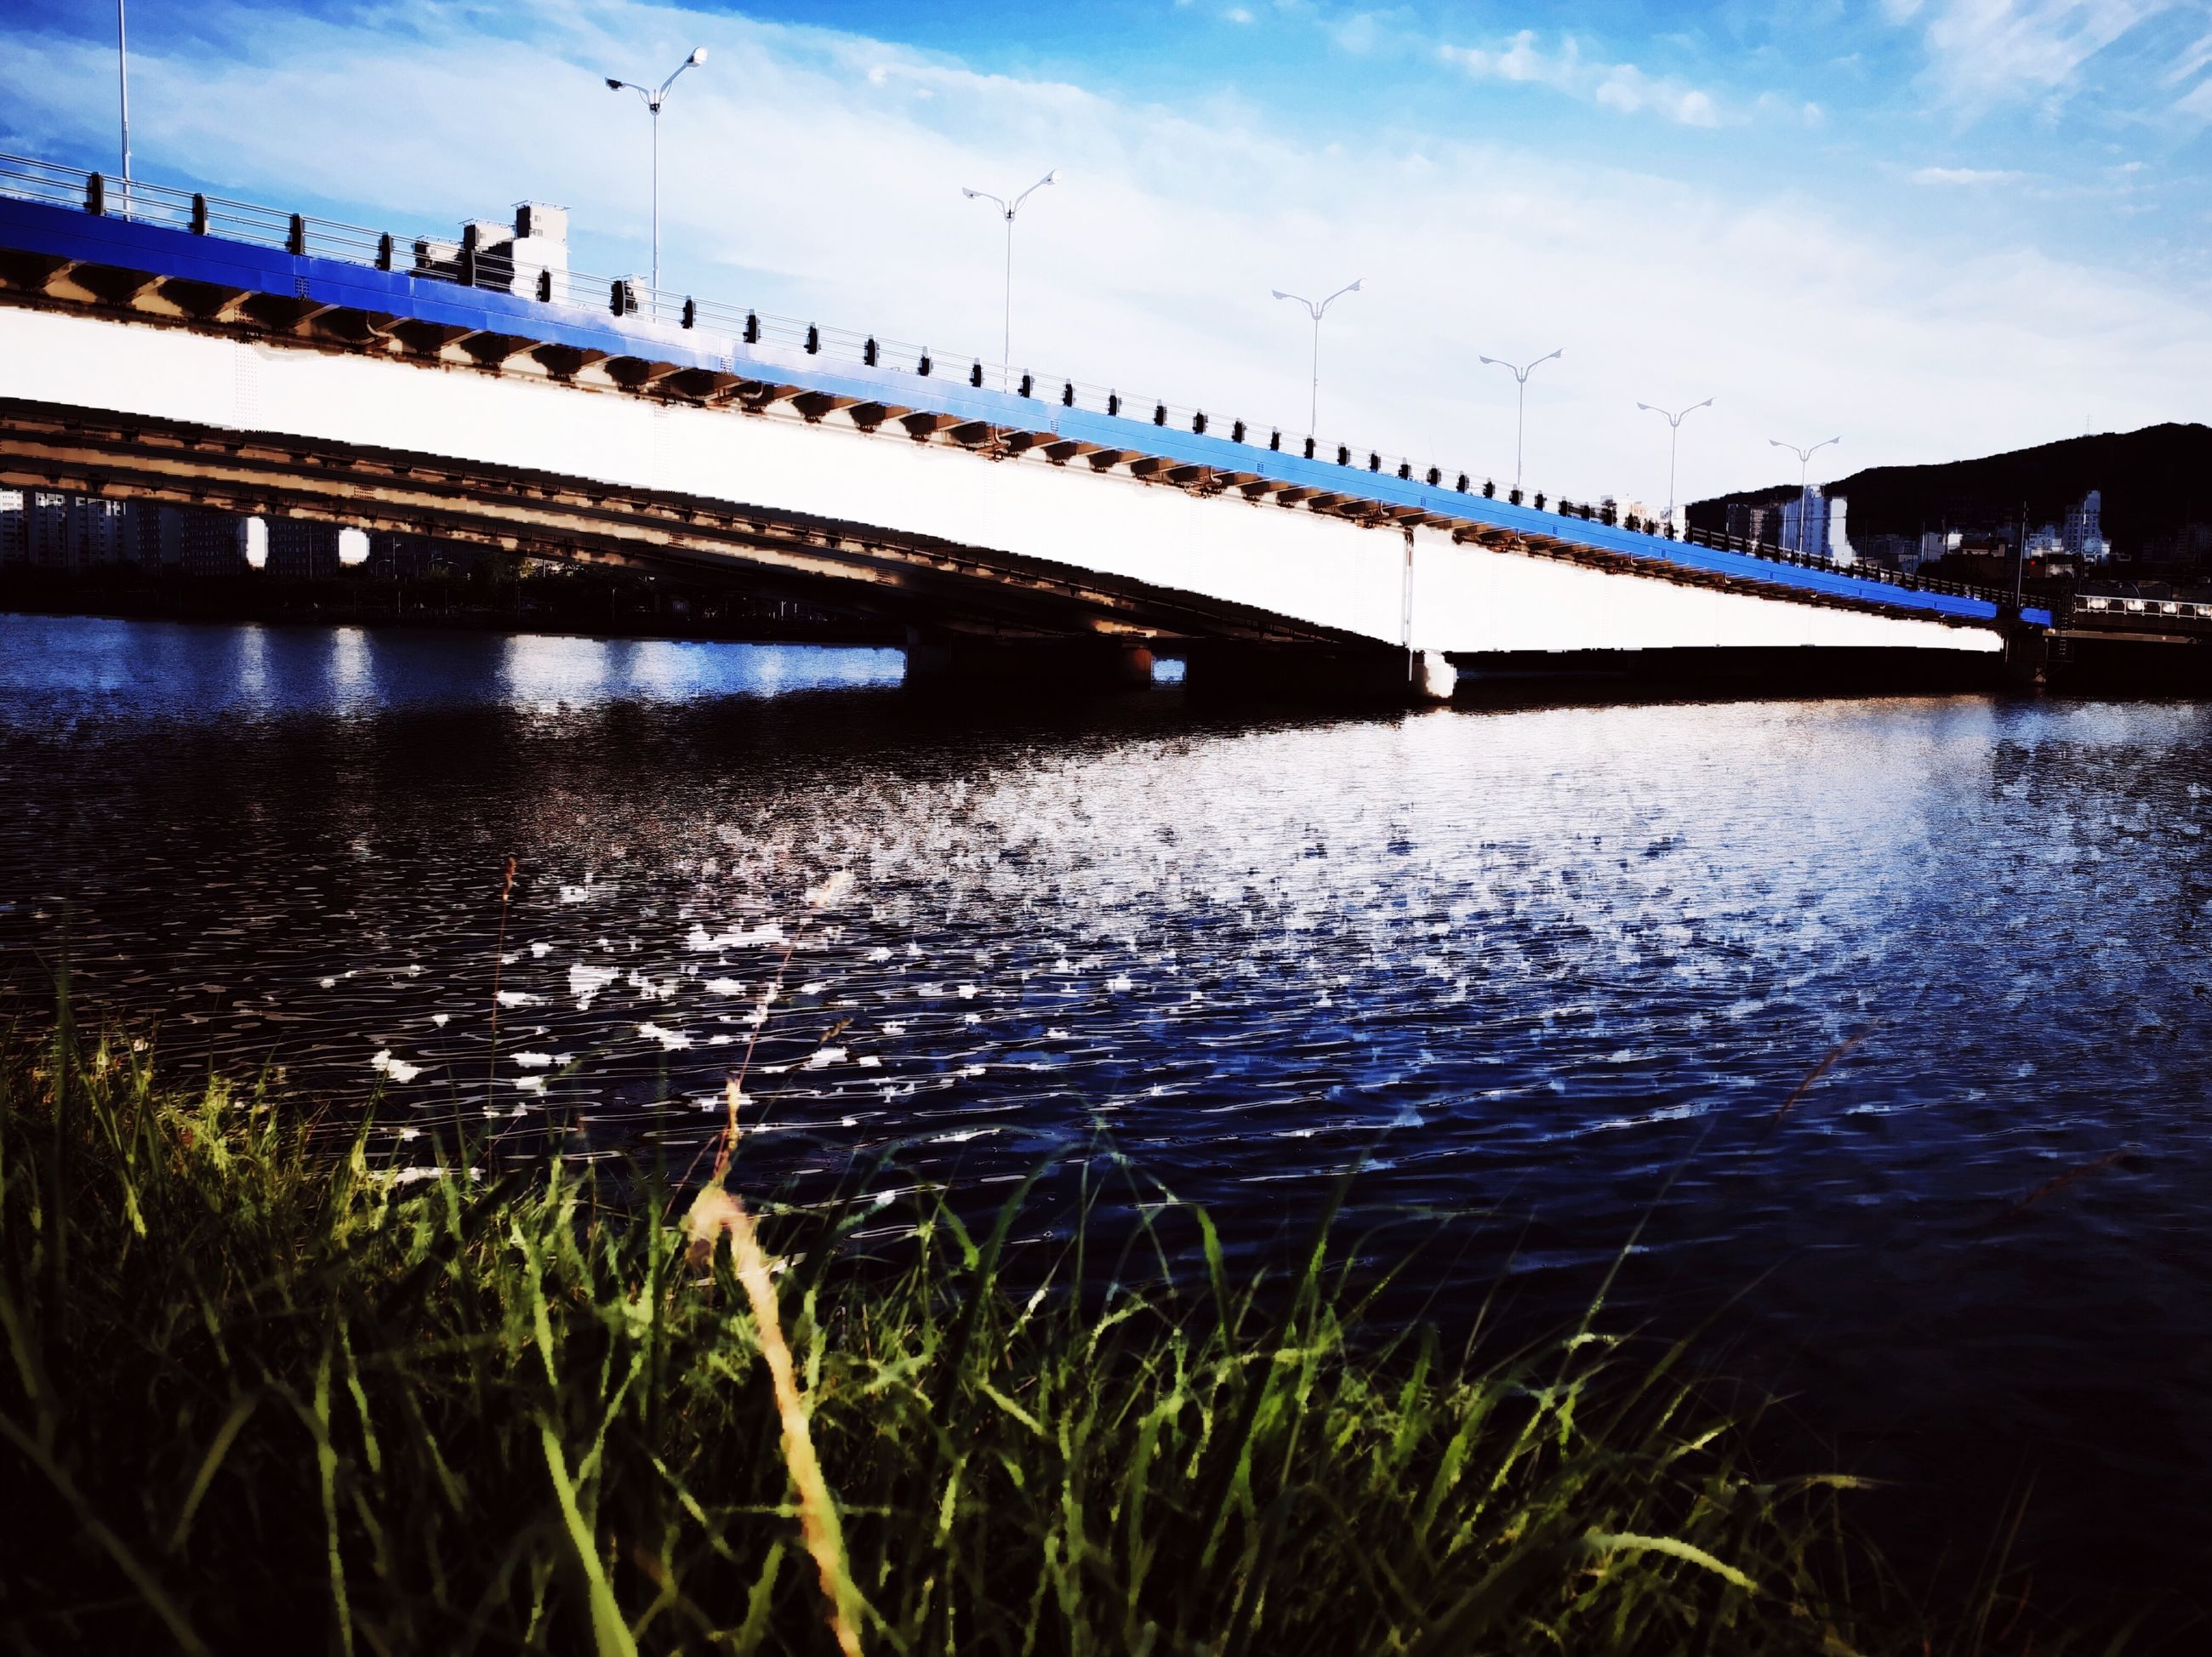 water, connection, bridge, river, architecture, transportation, bridge - man made structure, built structure, sky, nature, reflection, no people, outdoors, cloud - sky, waterfront, motion, mode of transportation, day